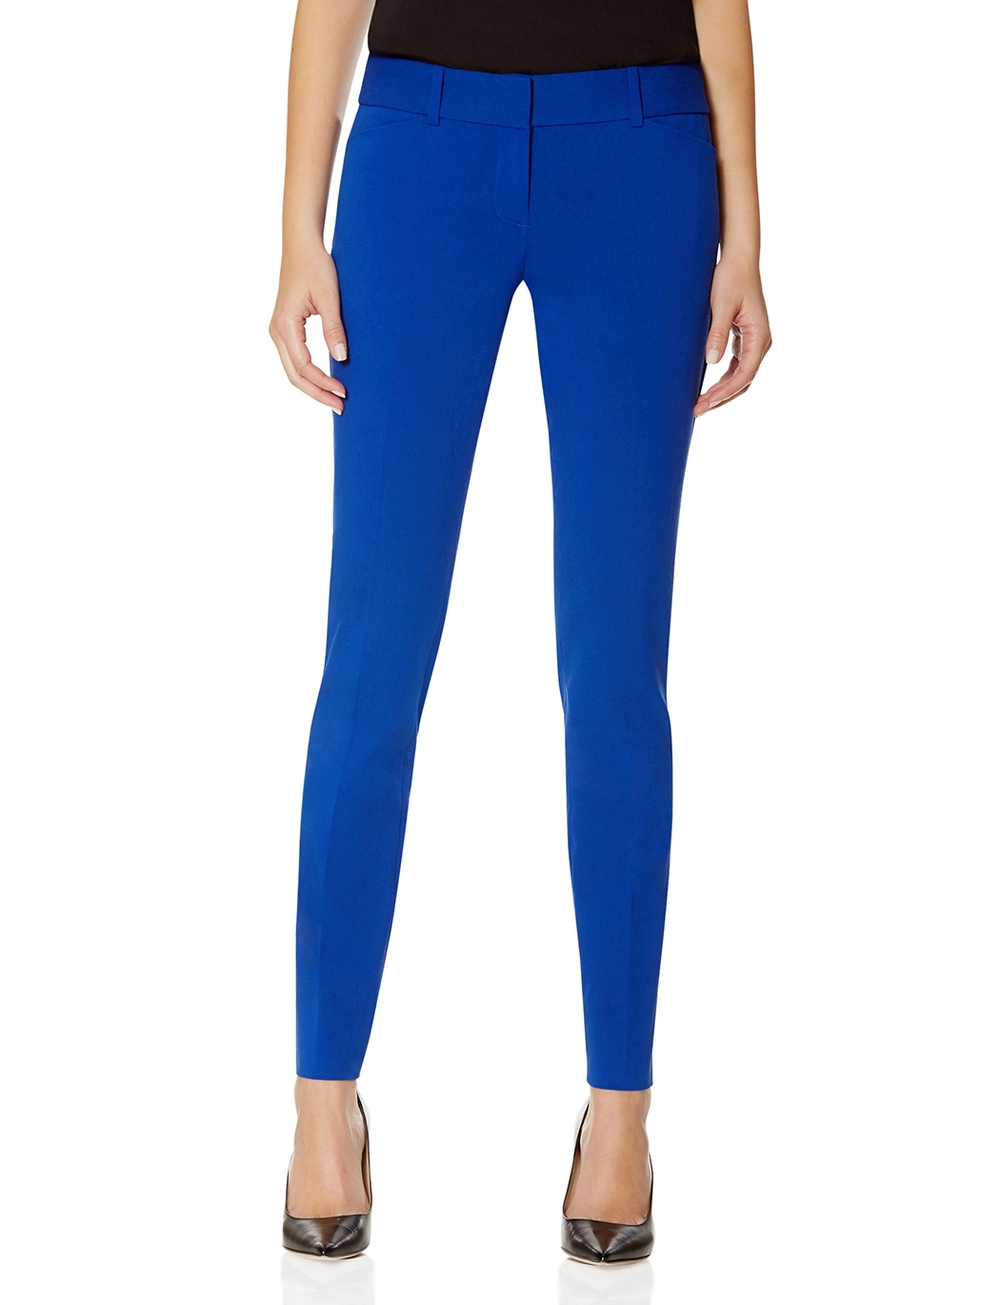 Exact Stretch skinny pants. (Machine washable!). The Limited. $69.90. BOGO right now.